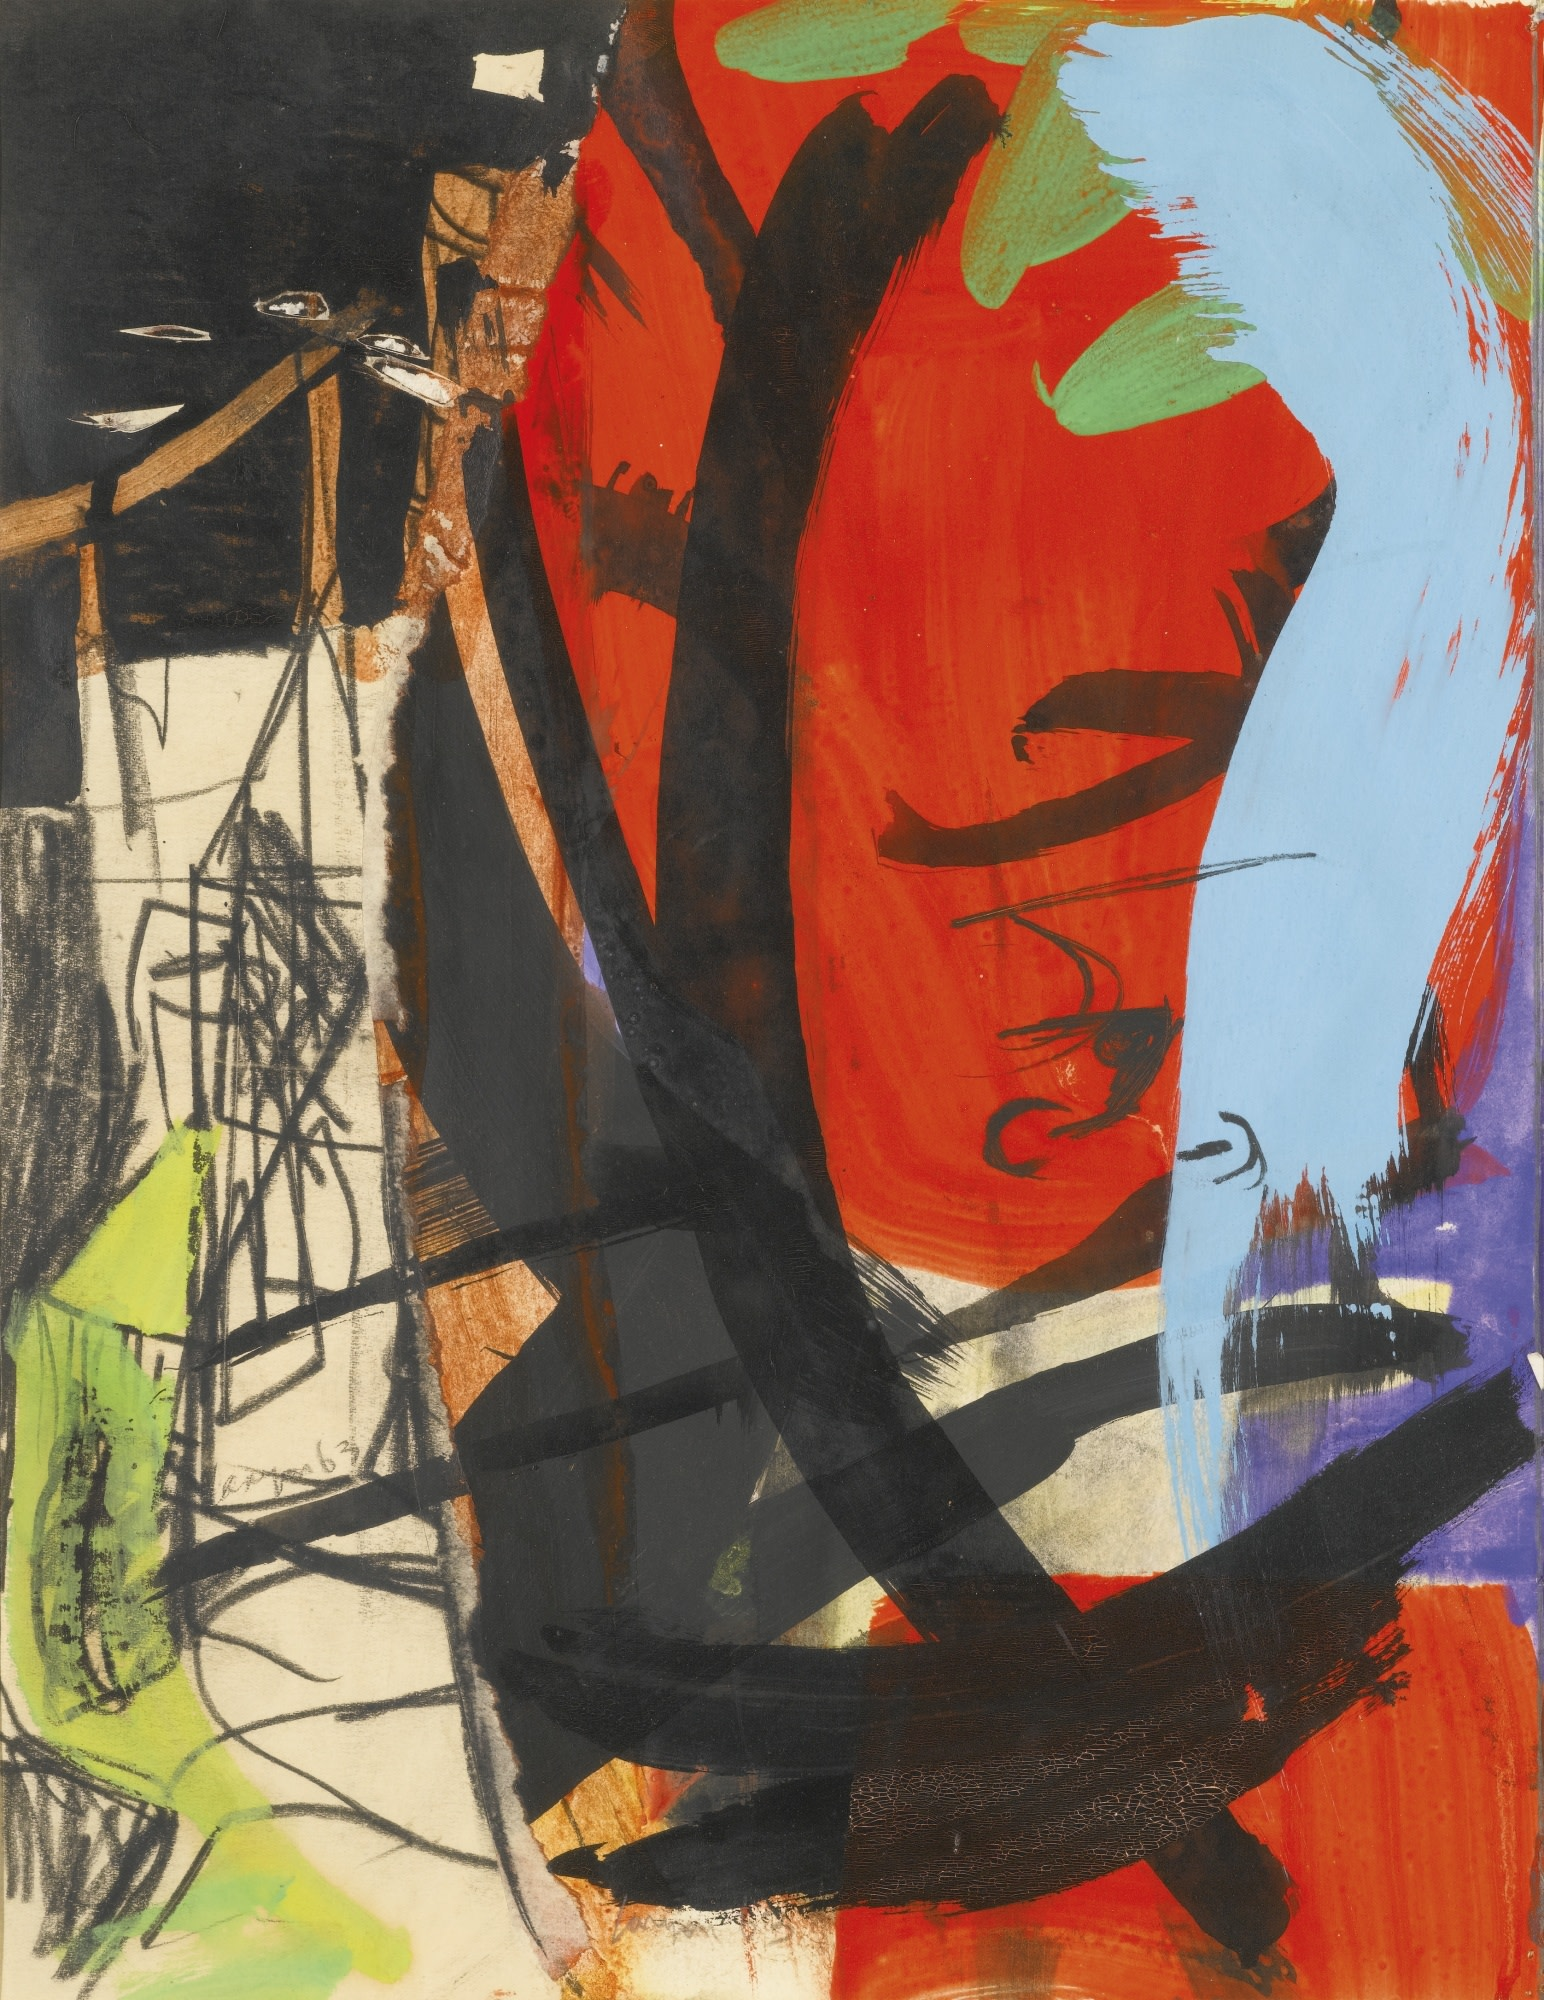 <span class=&#34;link fancybox-details-link&#34;><a href=&#34;/artists/46-peter-lanyon/works/1554-peter-lanyon-red-leaf-and-tower-1963/&#34;>View Detail Page</a></span><div class=&#34;artist&#34;><strong>Peter Lanyon</strong></div> 1918–1964 <div class=&#34;title&#34;><em>Red Leaf and Tower</em>, 1963</div> <div class=&#34;signed_and_dated&#34;>signed and dated '63'</div> <div class=&#34;medium&#34;>oil, gouache, charcoal and collage on paper</div> <div class=&#34;dimensions&#34;>35 x 27 cm<br /> 13 3/4 x 10 5/8 in</div><div class=&#34;copyright_line&#34;>@ The Estate of Peter Lanyon</div>